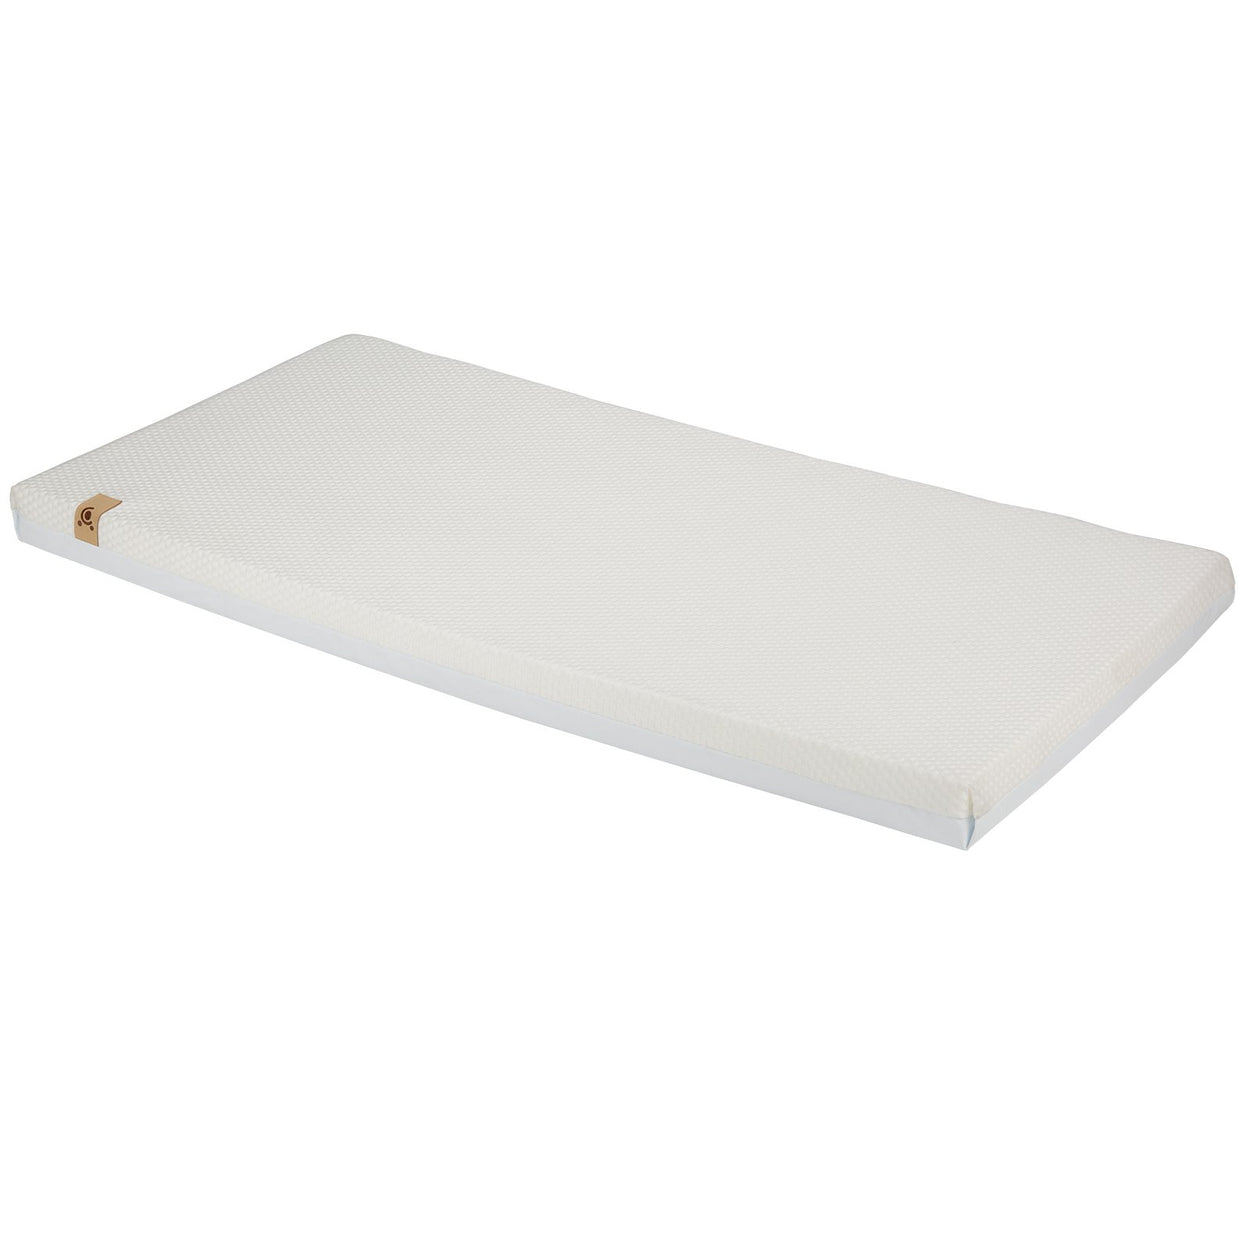 lullaby foam mattress cot 120 x 60cm